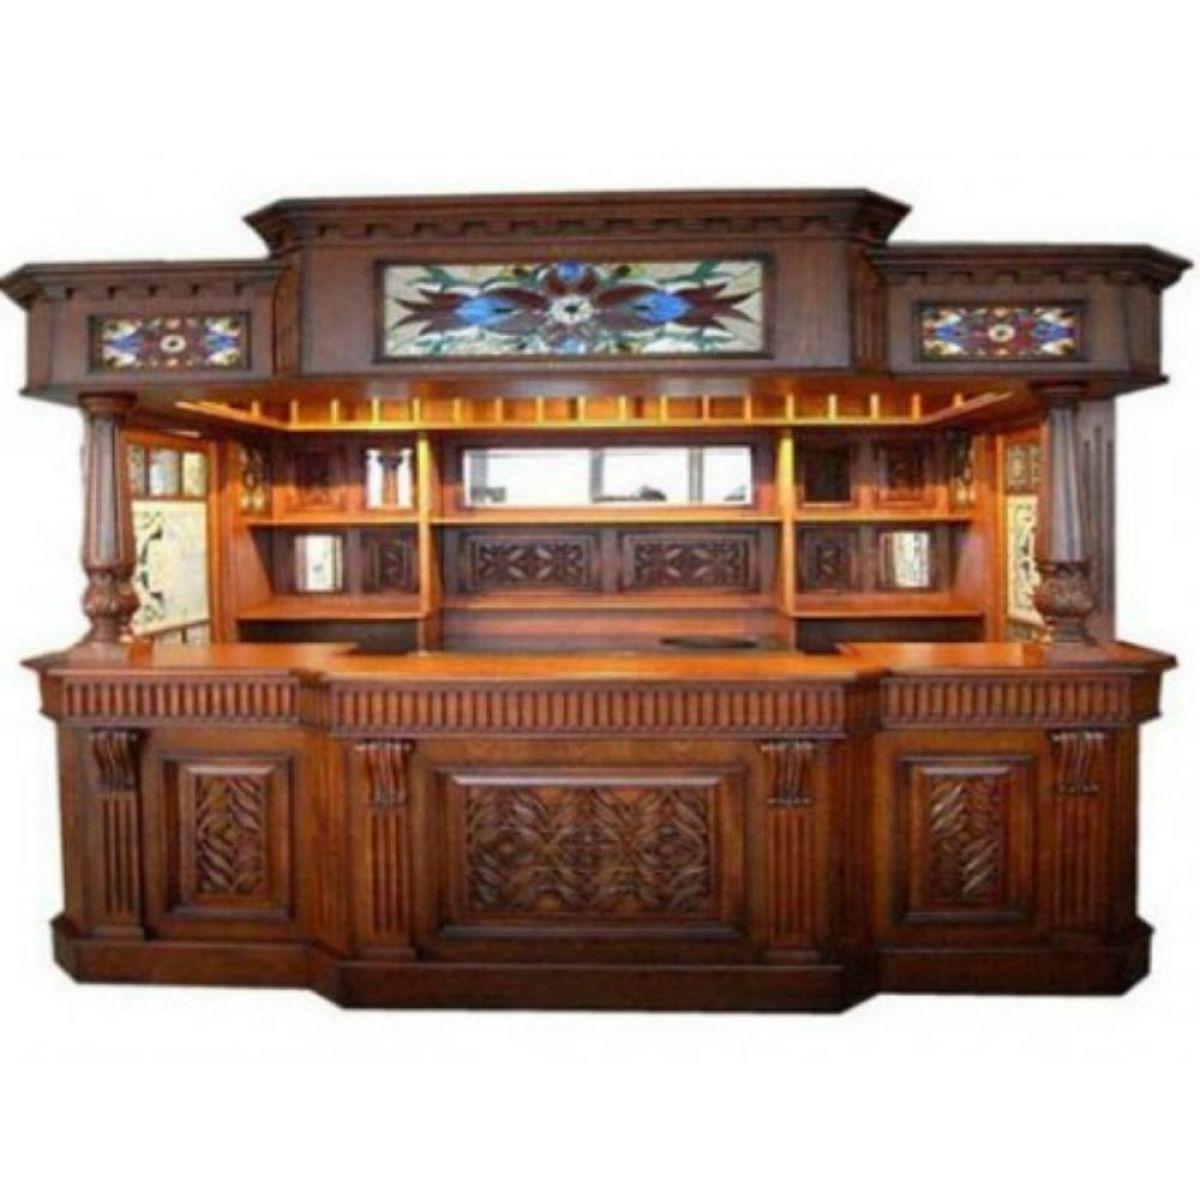 Irish Fitzpatrick Solid Mahogany Tavern Home Pub Ireland Bar With Tiffany Glass Canopy Full